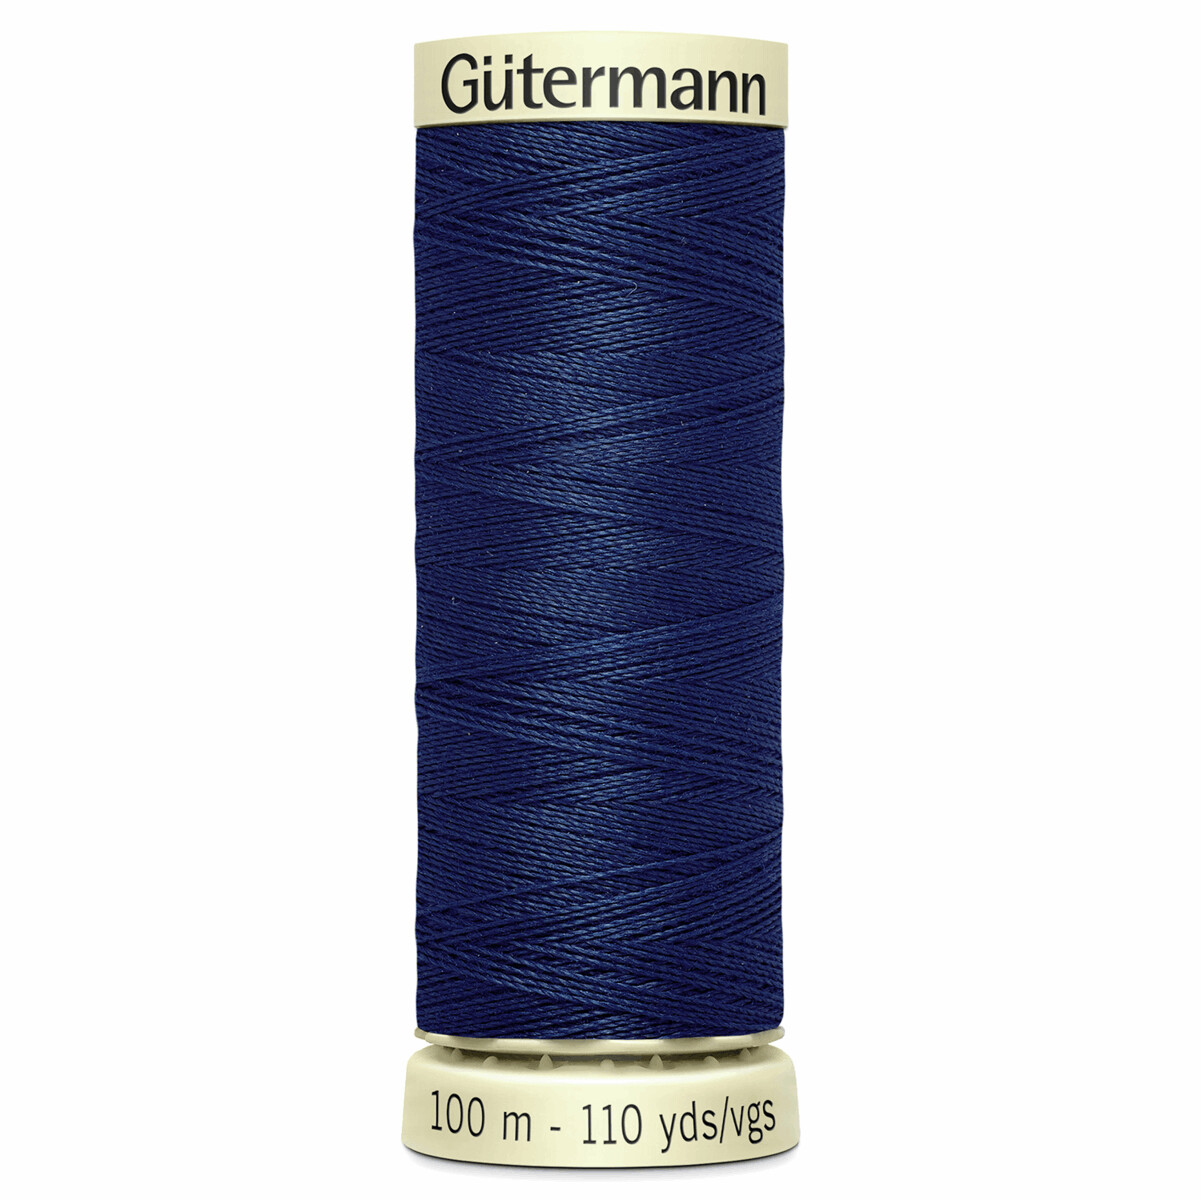 Gutermann Sew-All thread 13